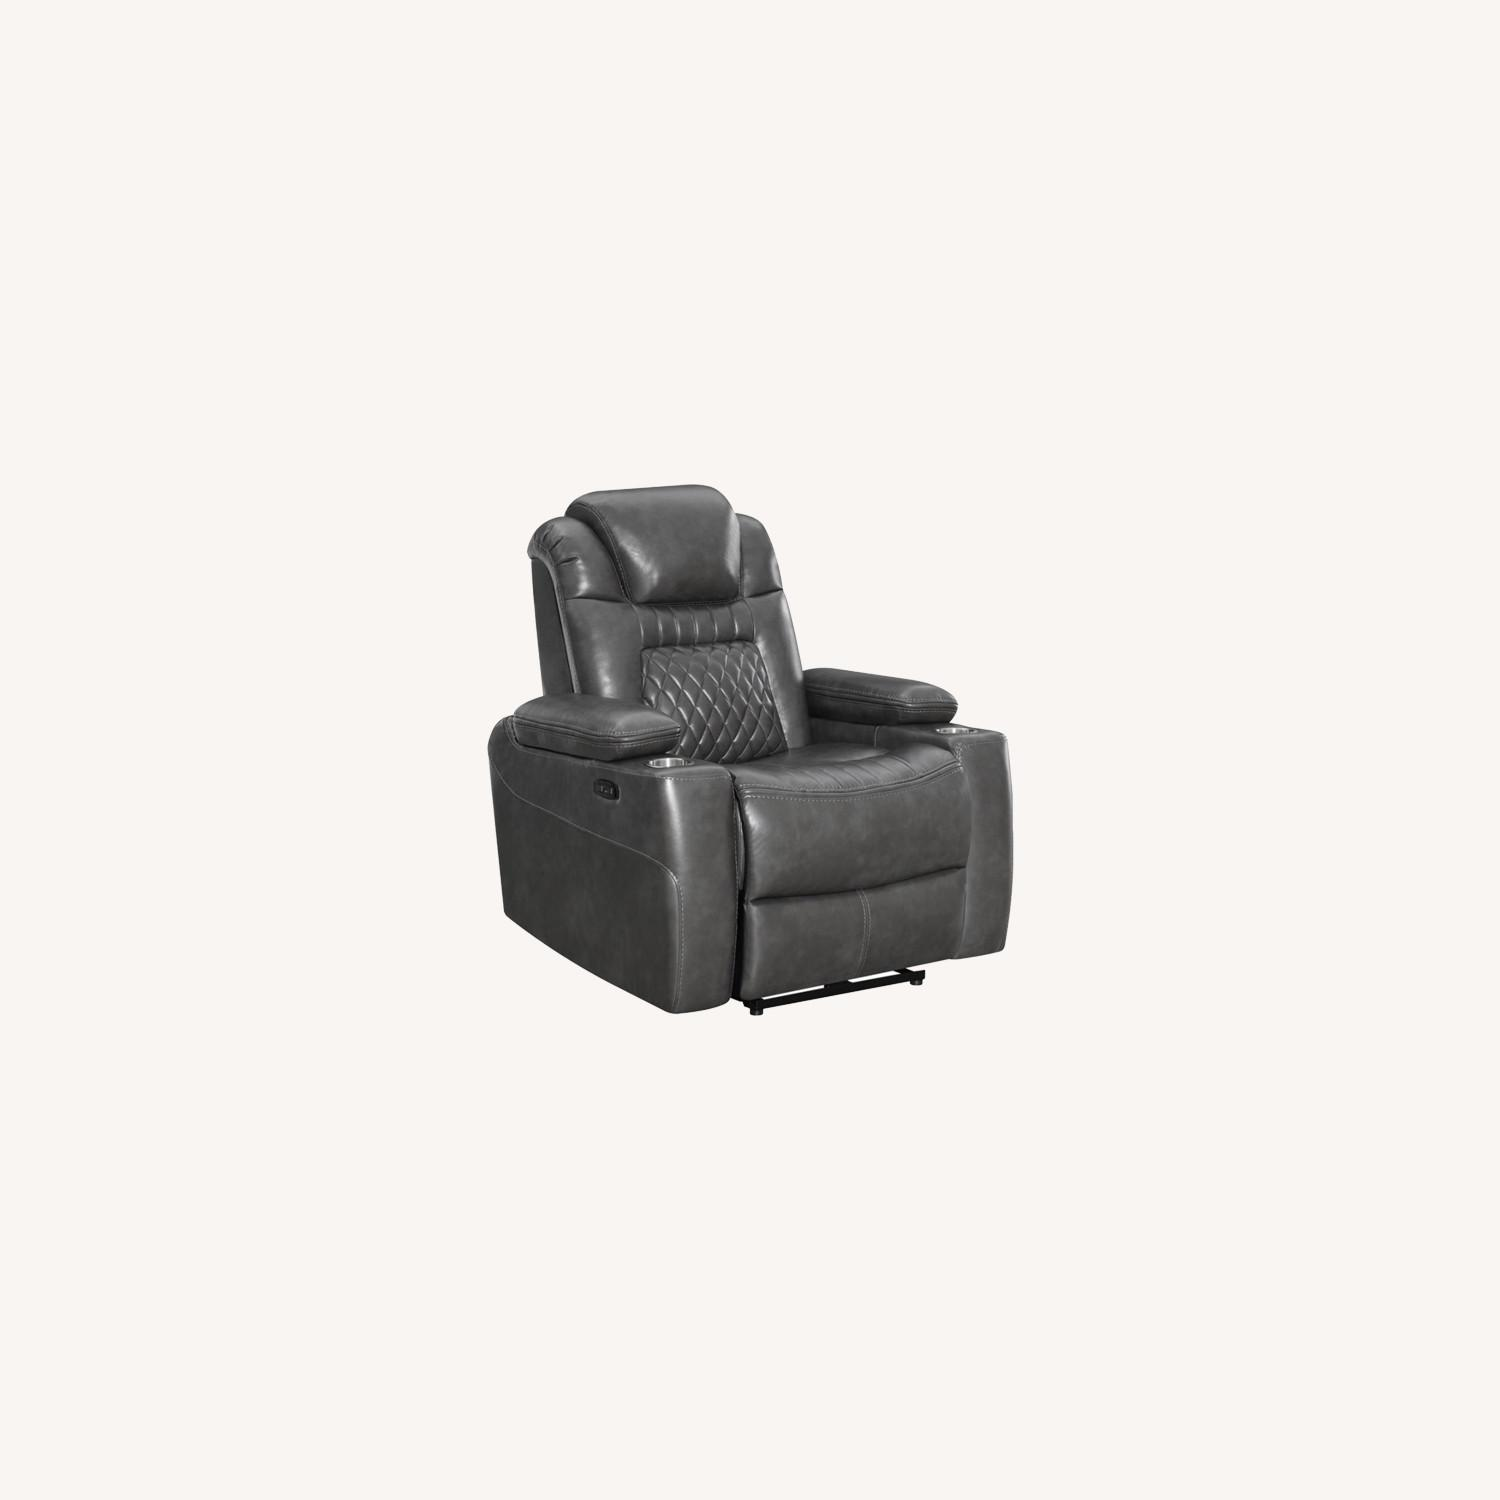 Power Recliner In Charcoal Microfiber Upholstery - image-8